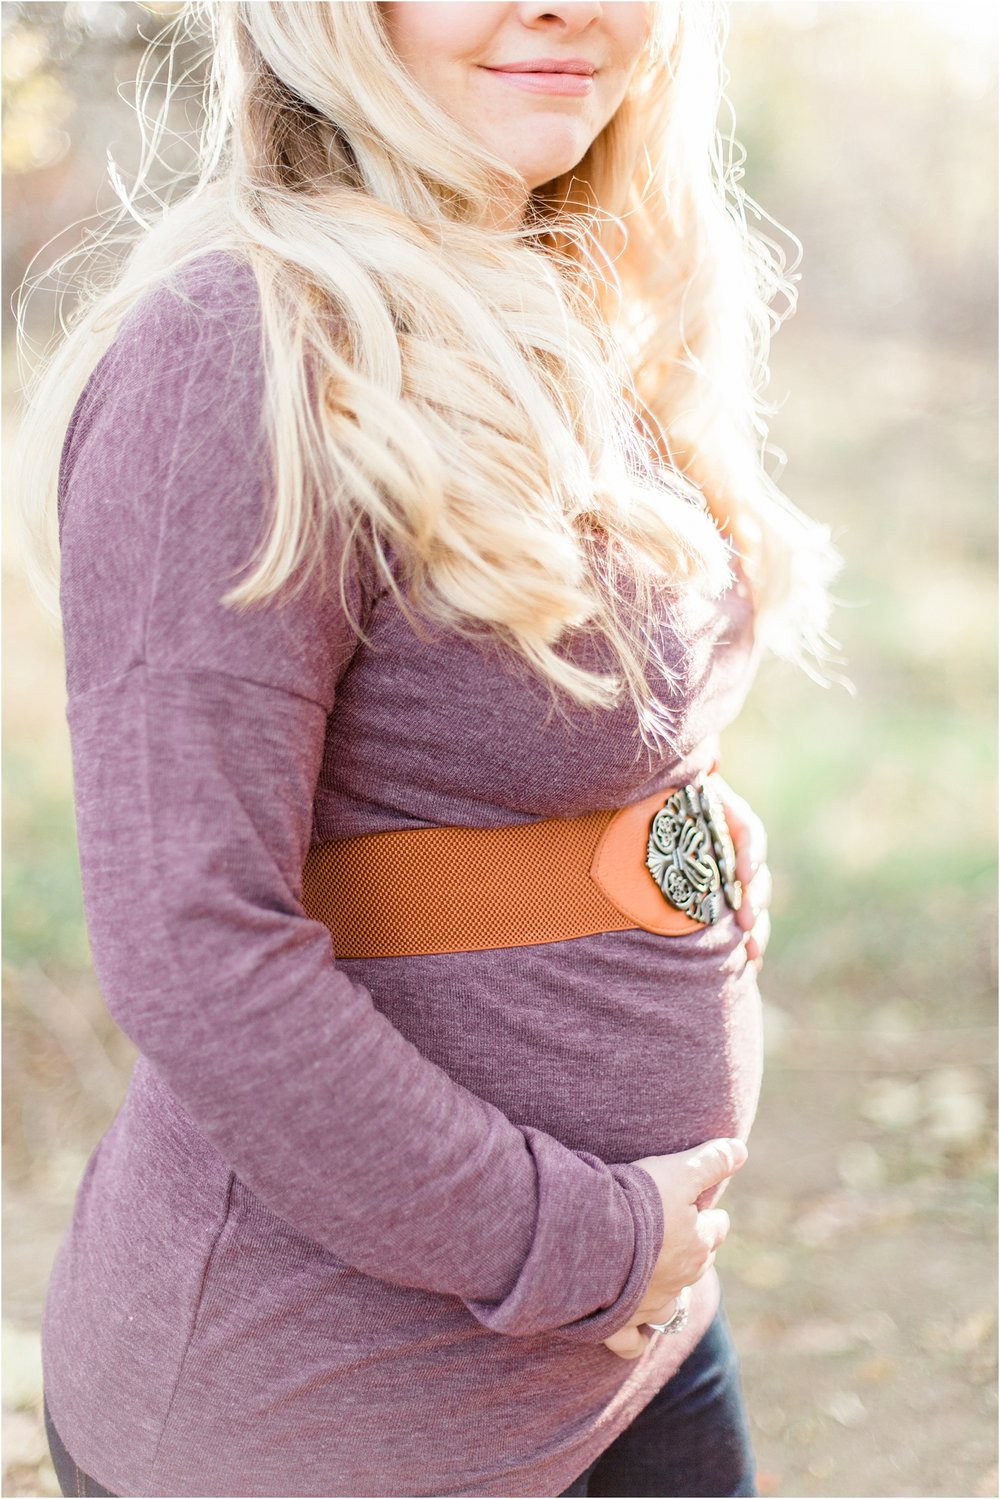 plum maternity style for her